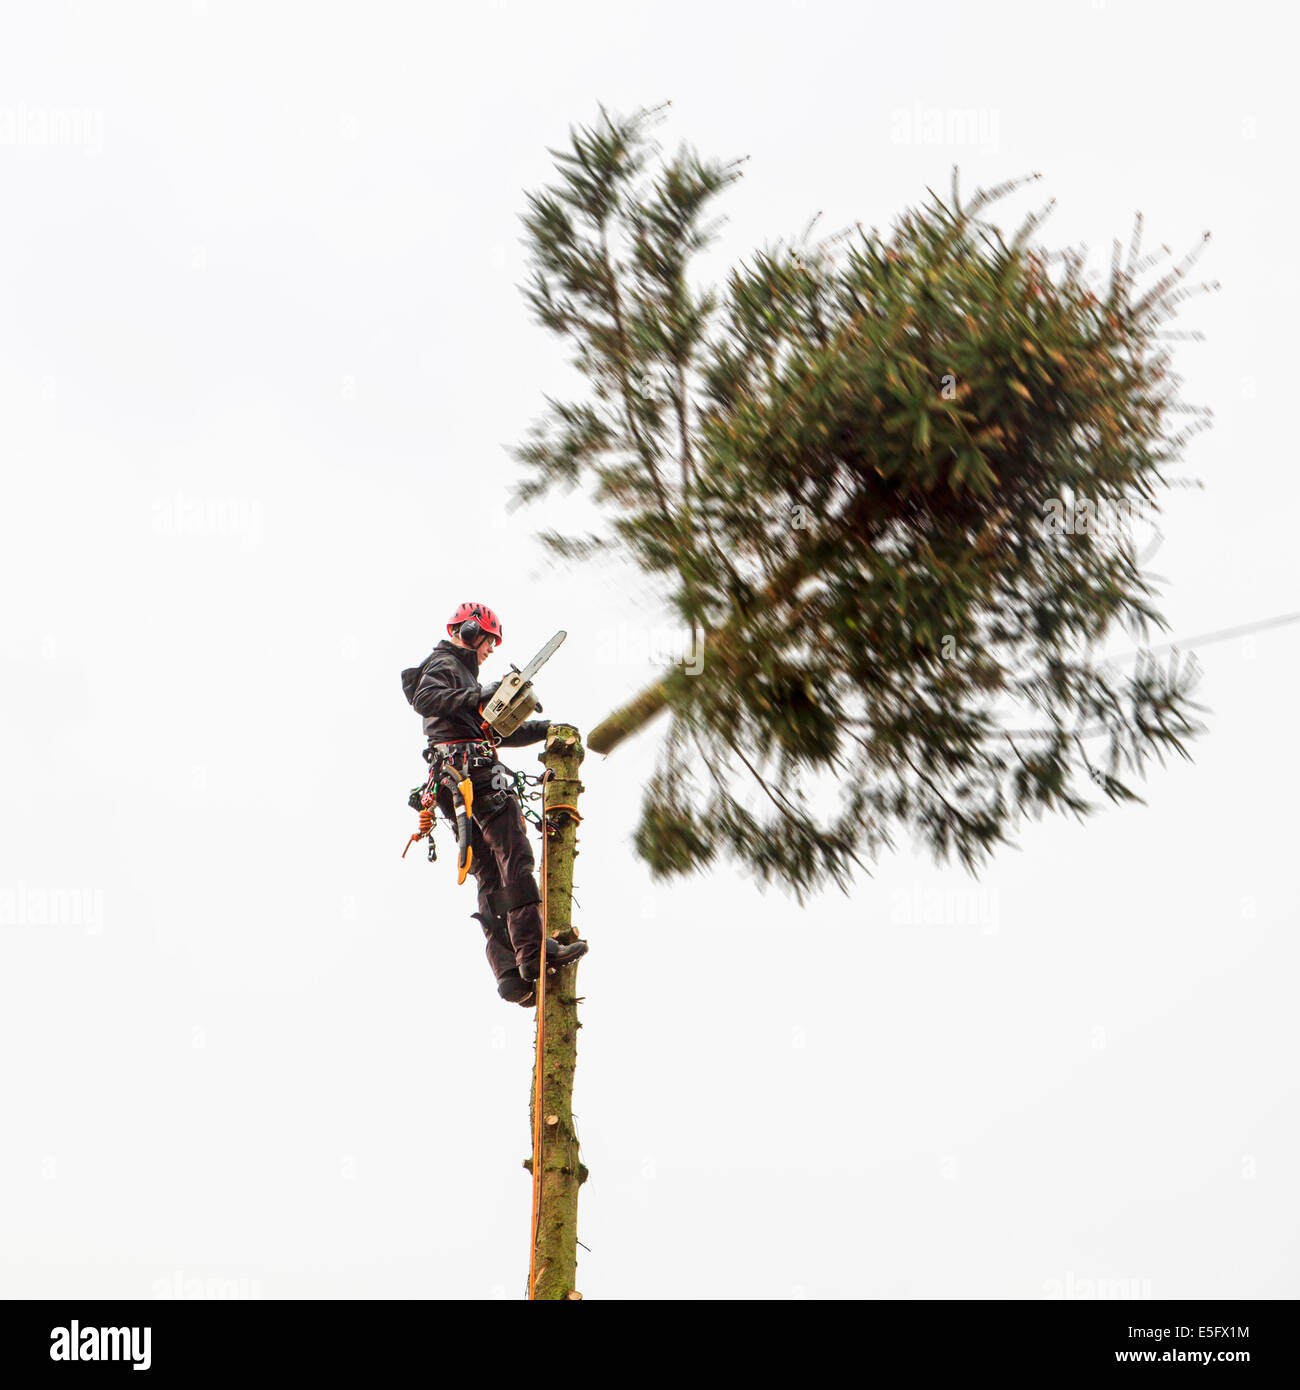 Tree surgeon / arborist / arboriculturist cutting tree top with chainsaw - Stock Image